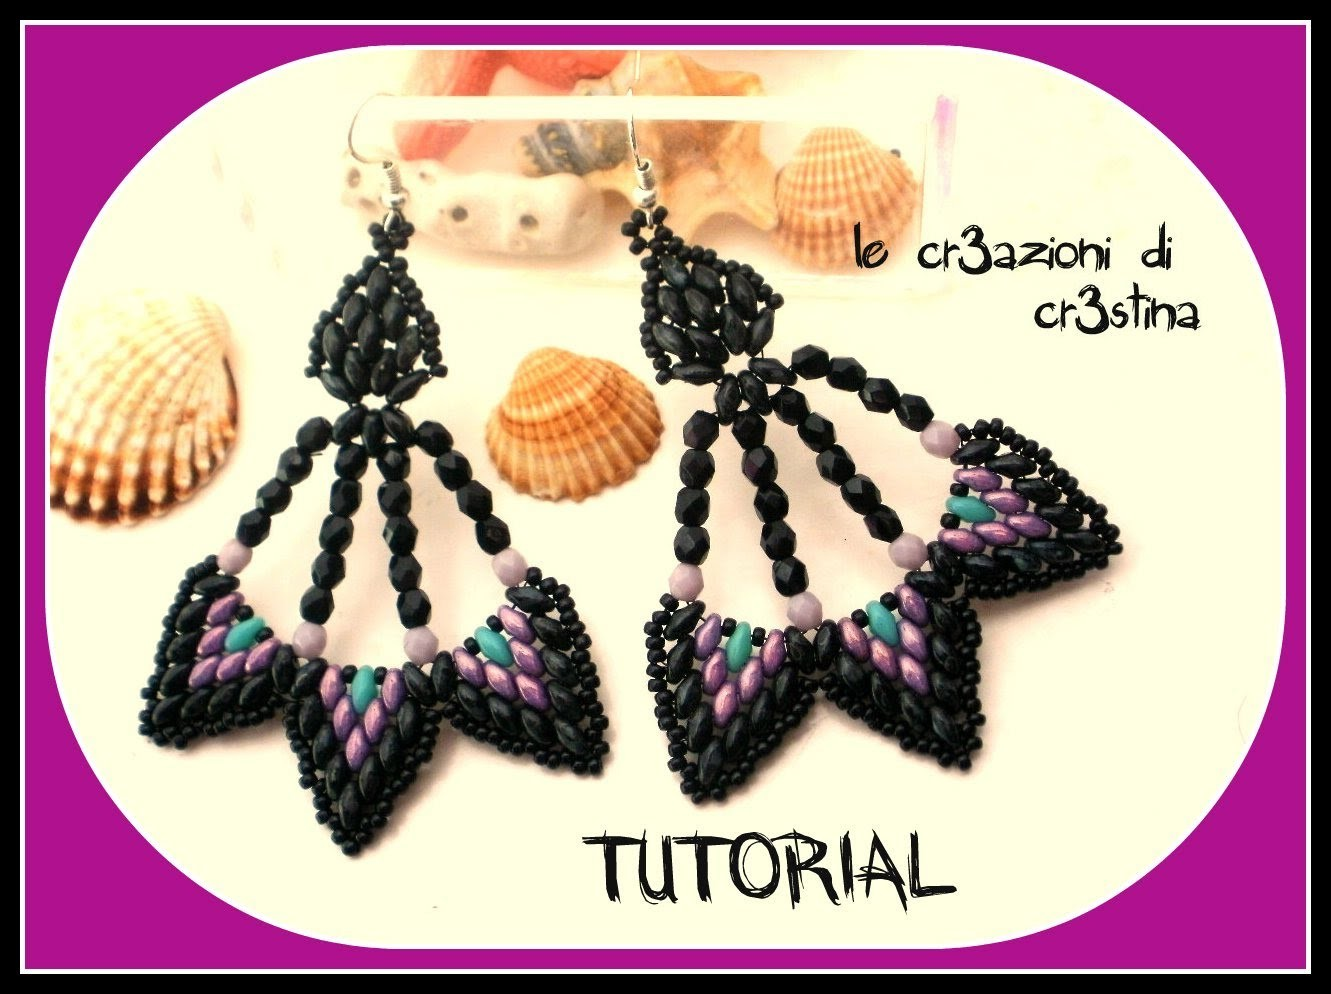 Tutorial Orecchini Peacock con Superduo.Twin Beads, Mezzi Cristalli, Perline Rocailles-DIY earrings